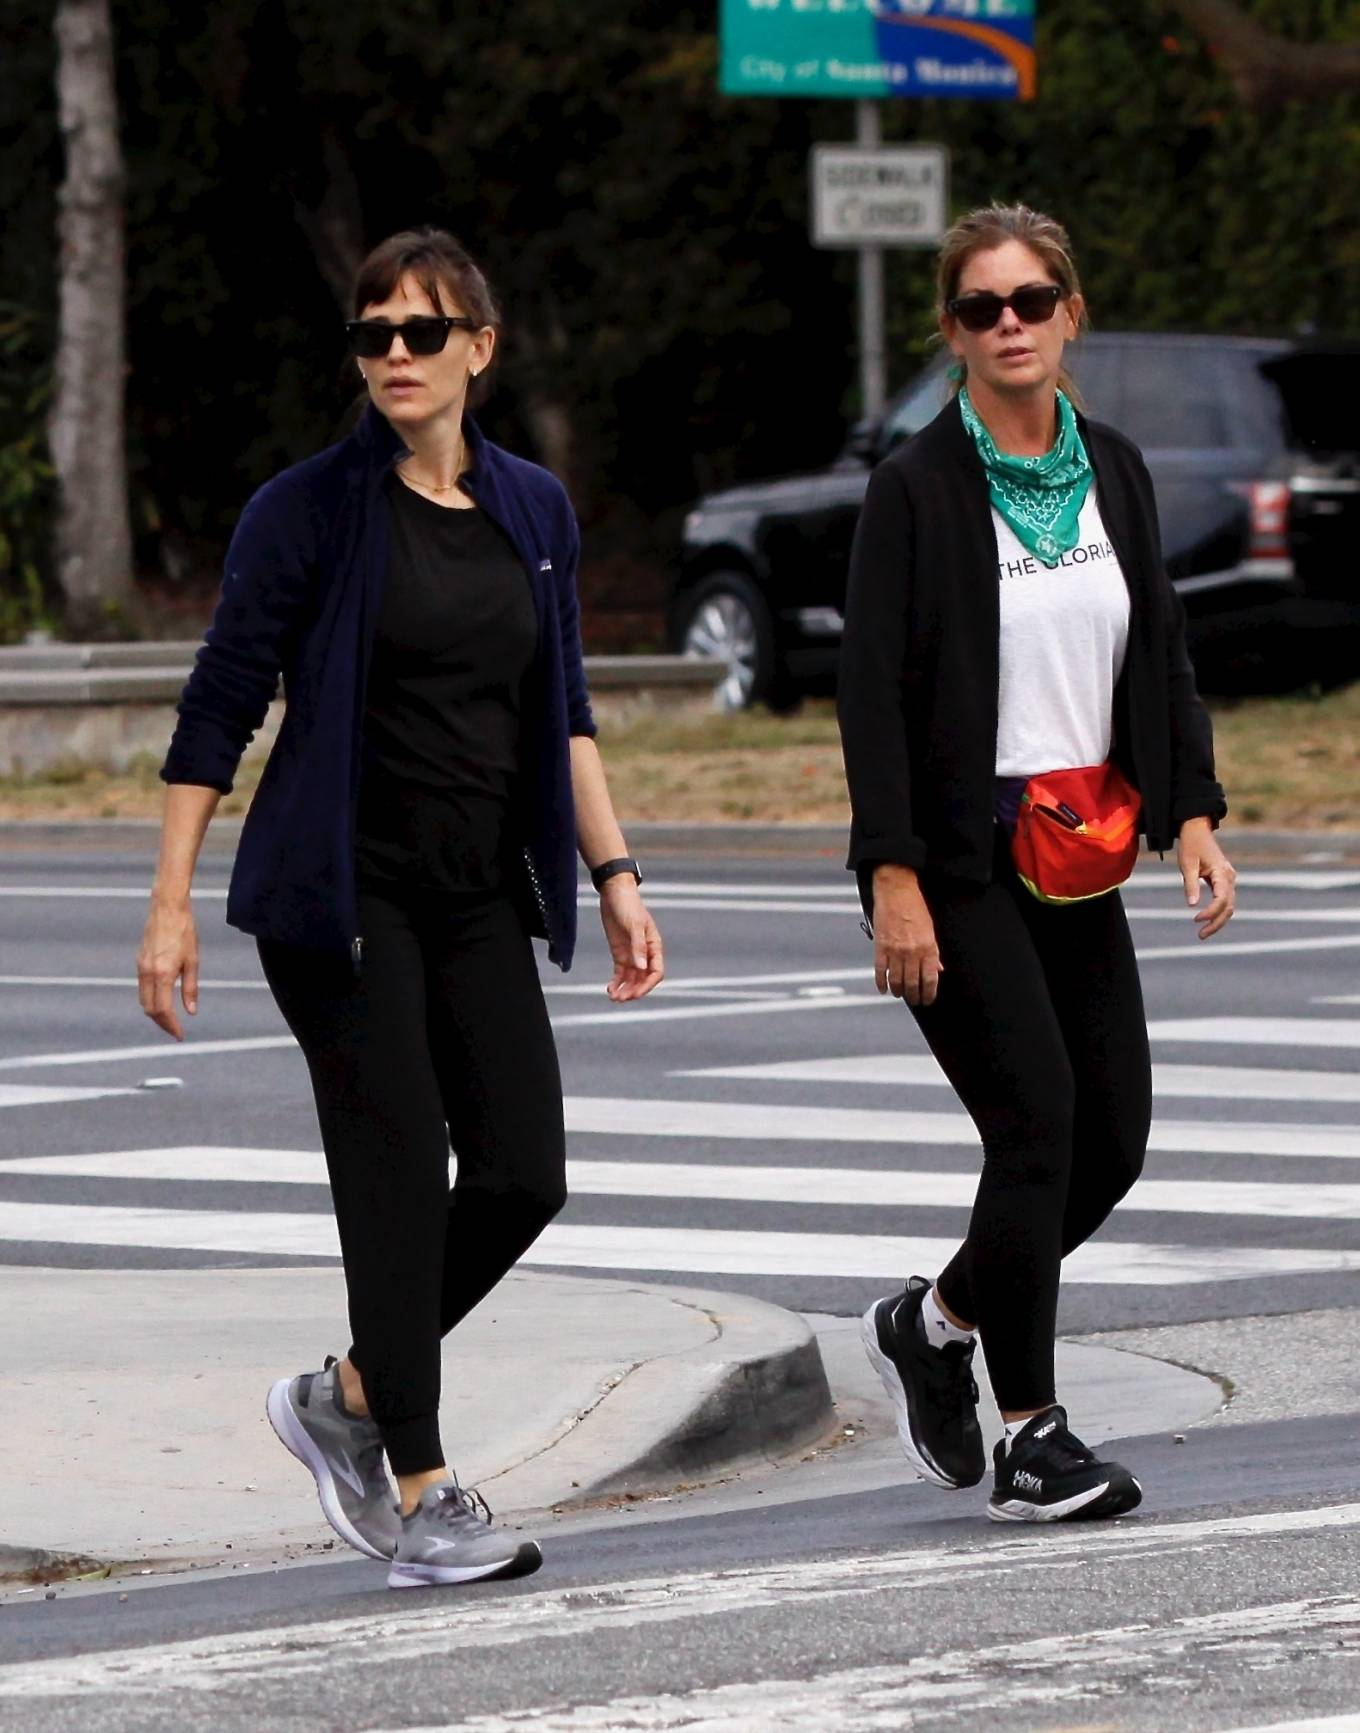 Jennifer Garner - Seen while out for a morning walk in Brentwood